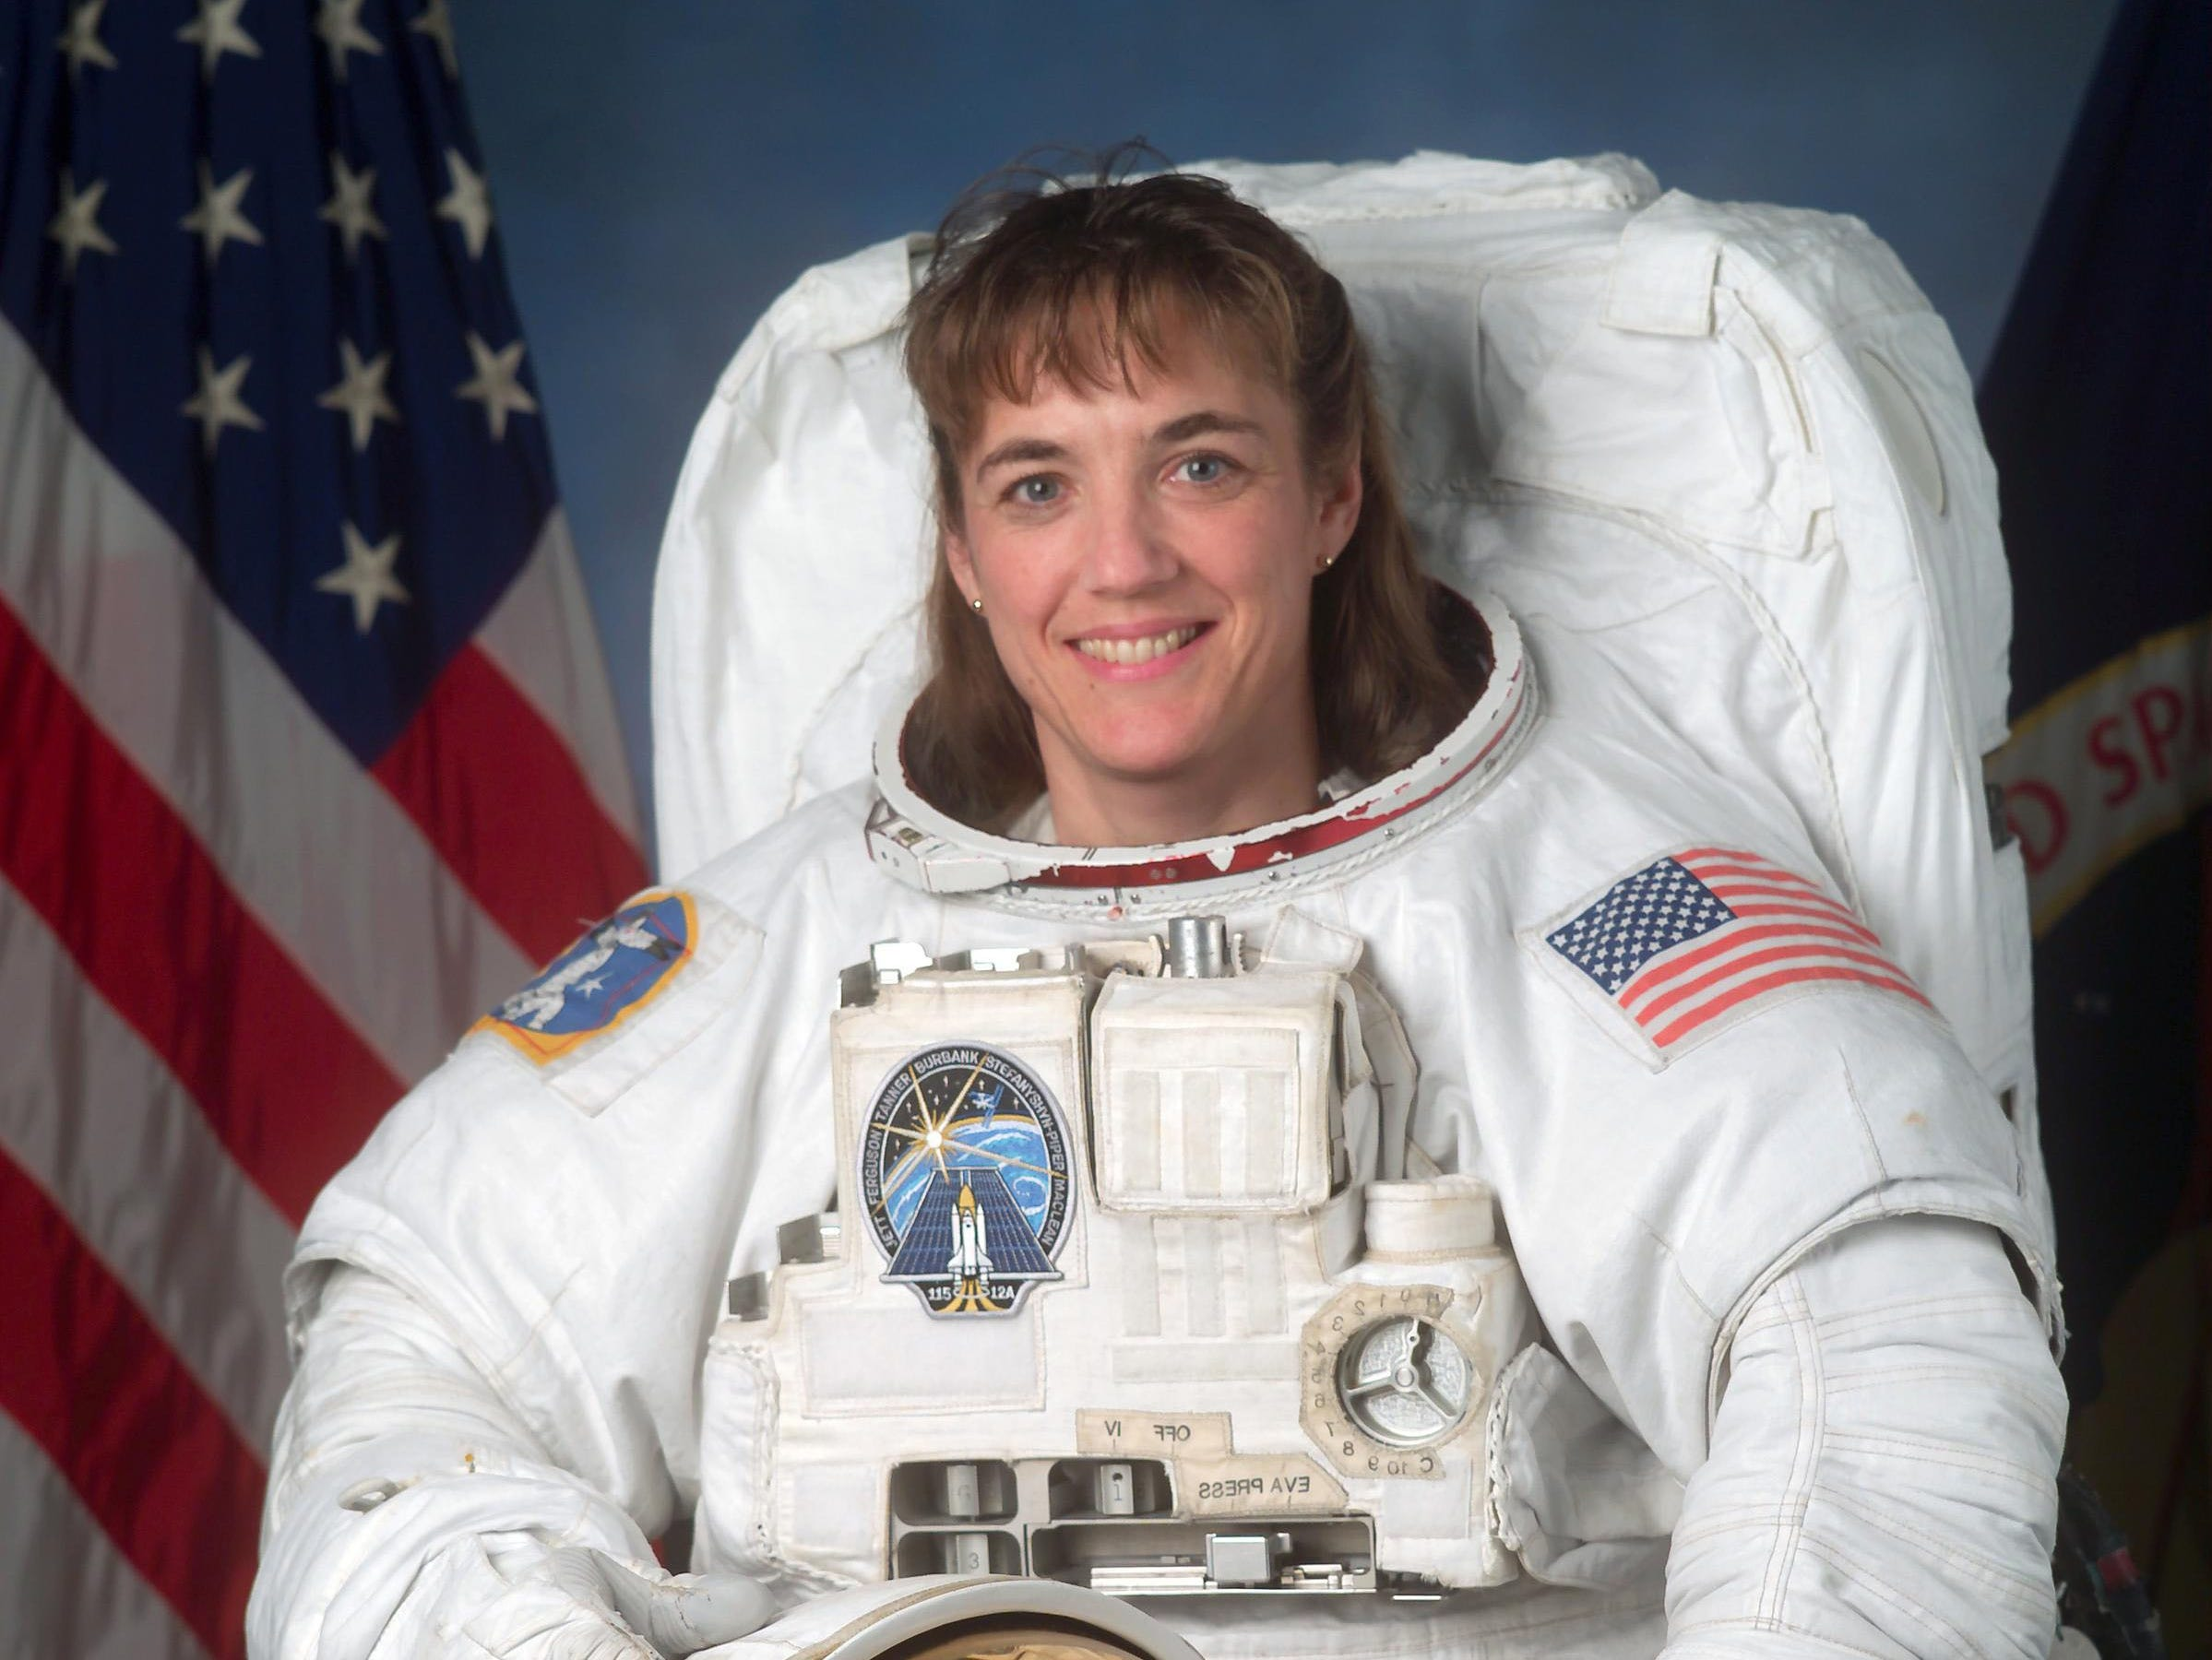 Astronaut Heidemarie Stefanyshyn-Piper made history as the first Minnesota woman to go into space. On Sunday, Aug. 27, 2006, the 43-year-old St. Paul native will blast off with five other crew members aboard the shuttle Atlantis to resume construction of the International Space Station.